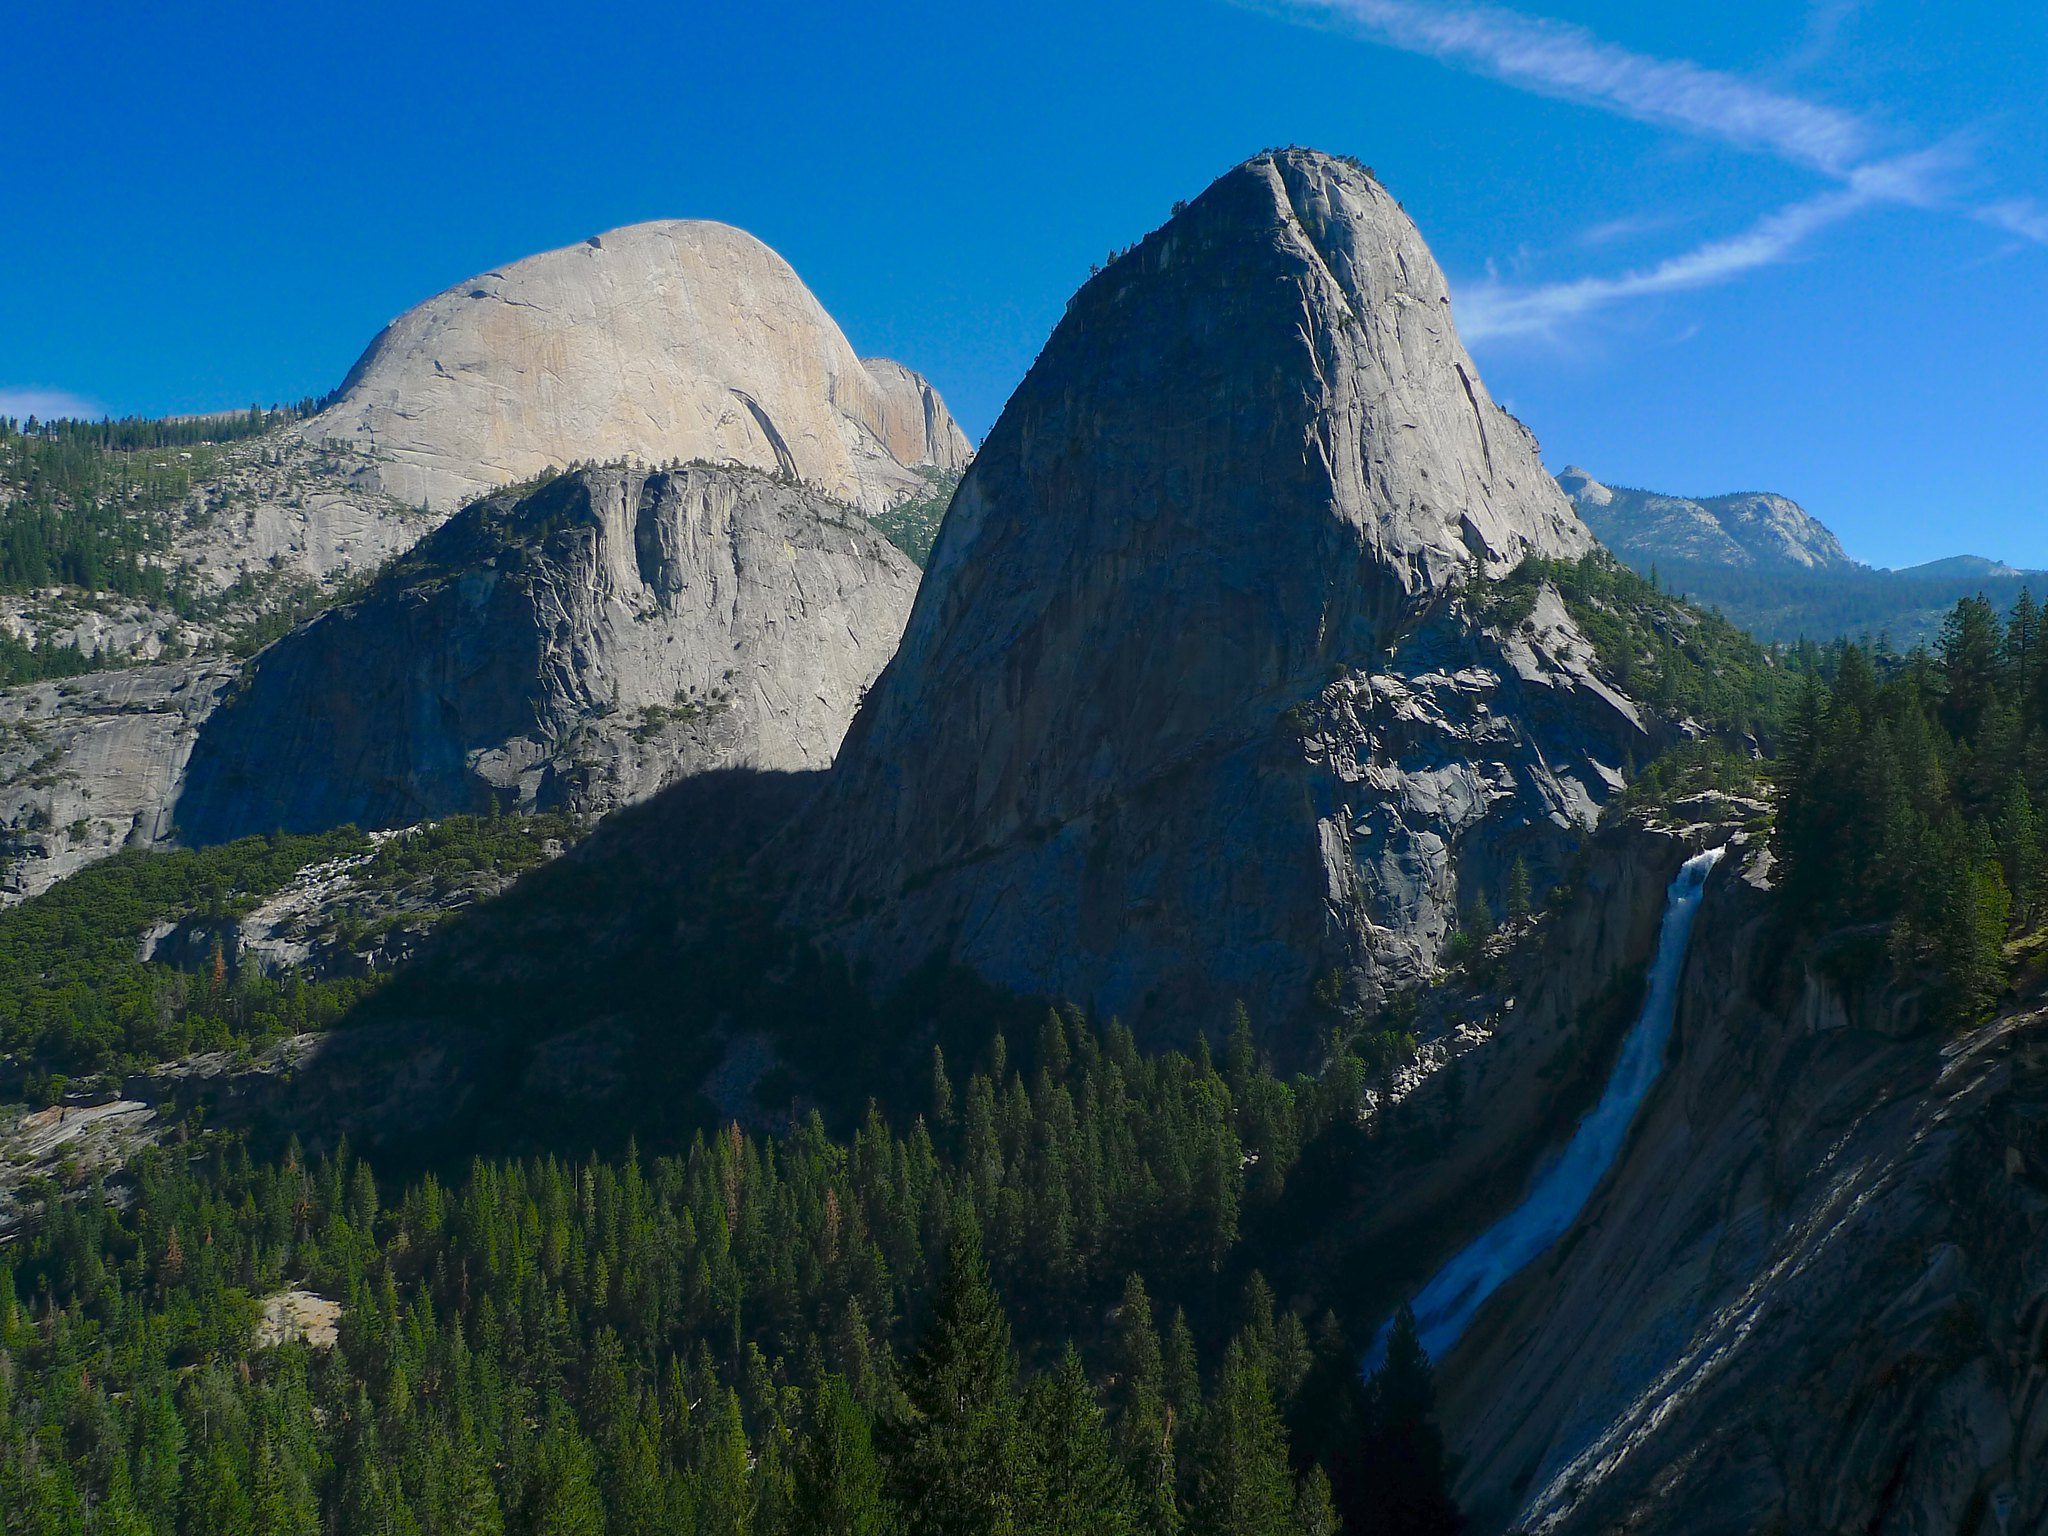 Classic view from the John Muir Trail